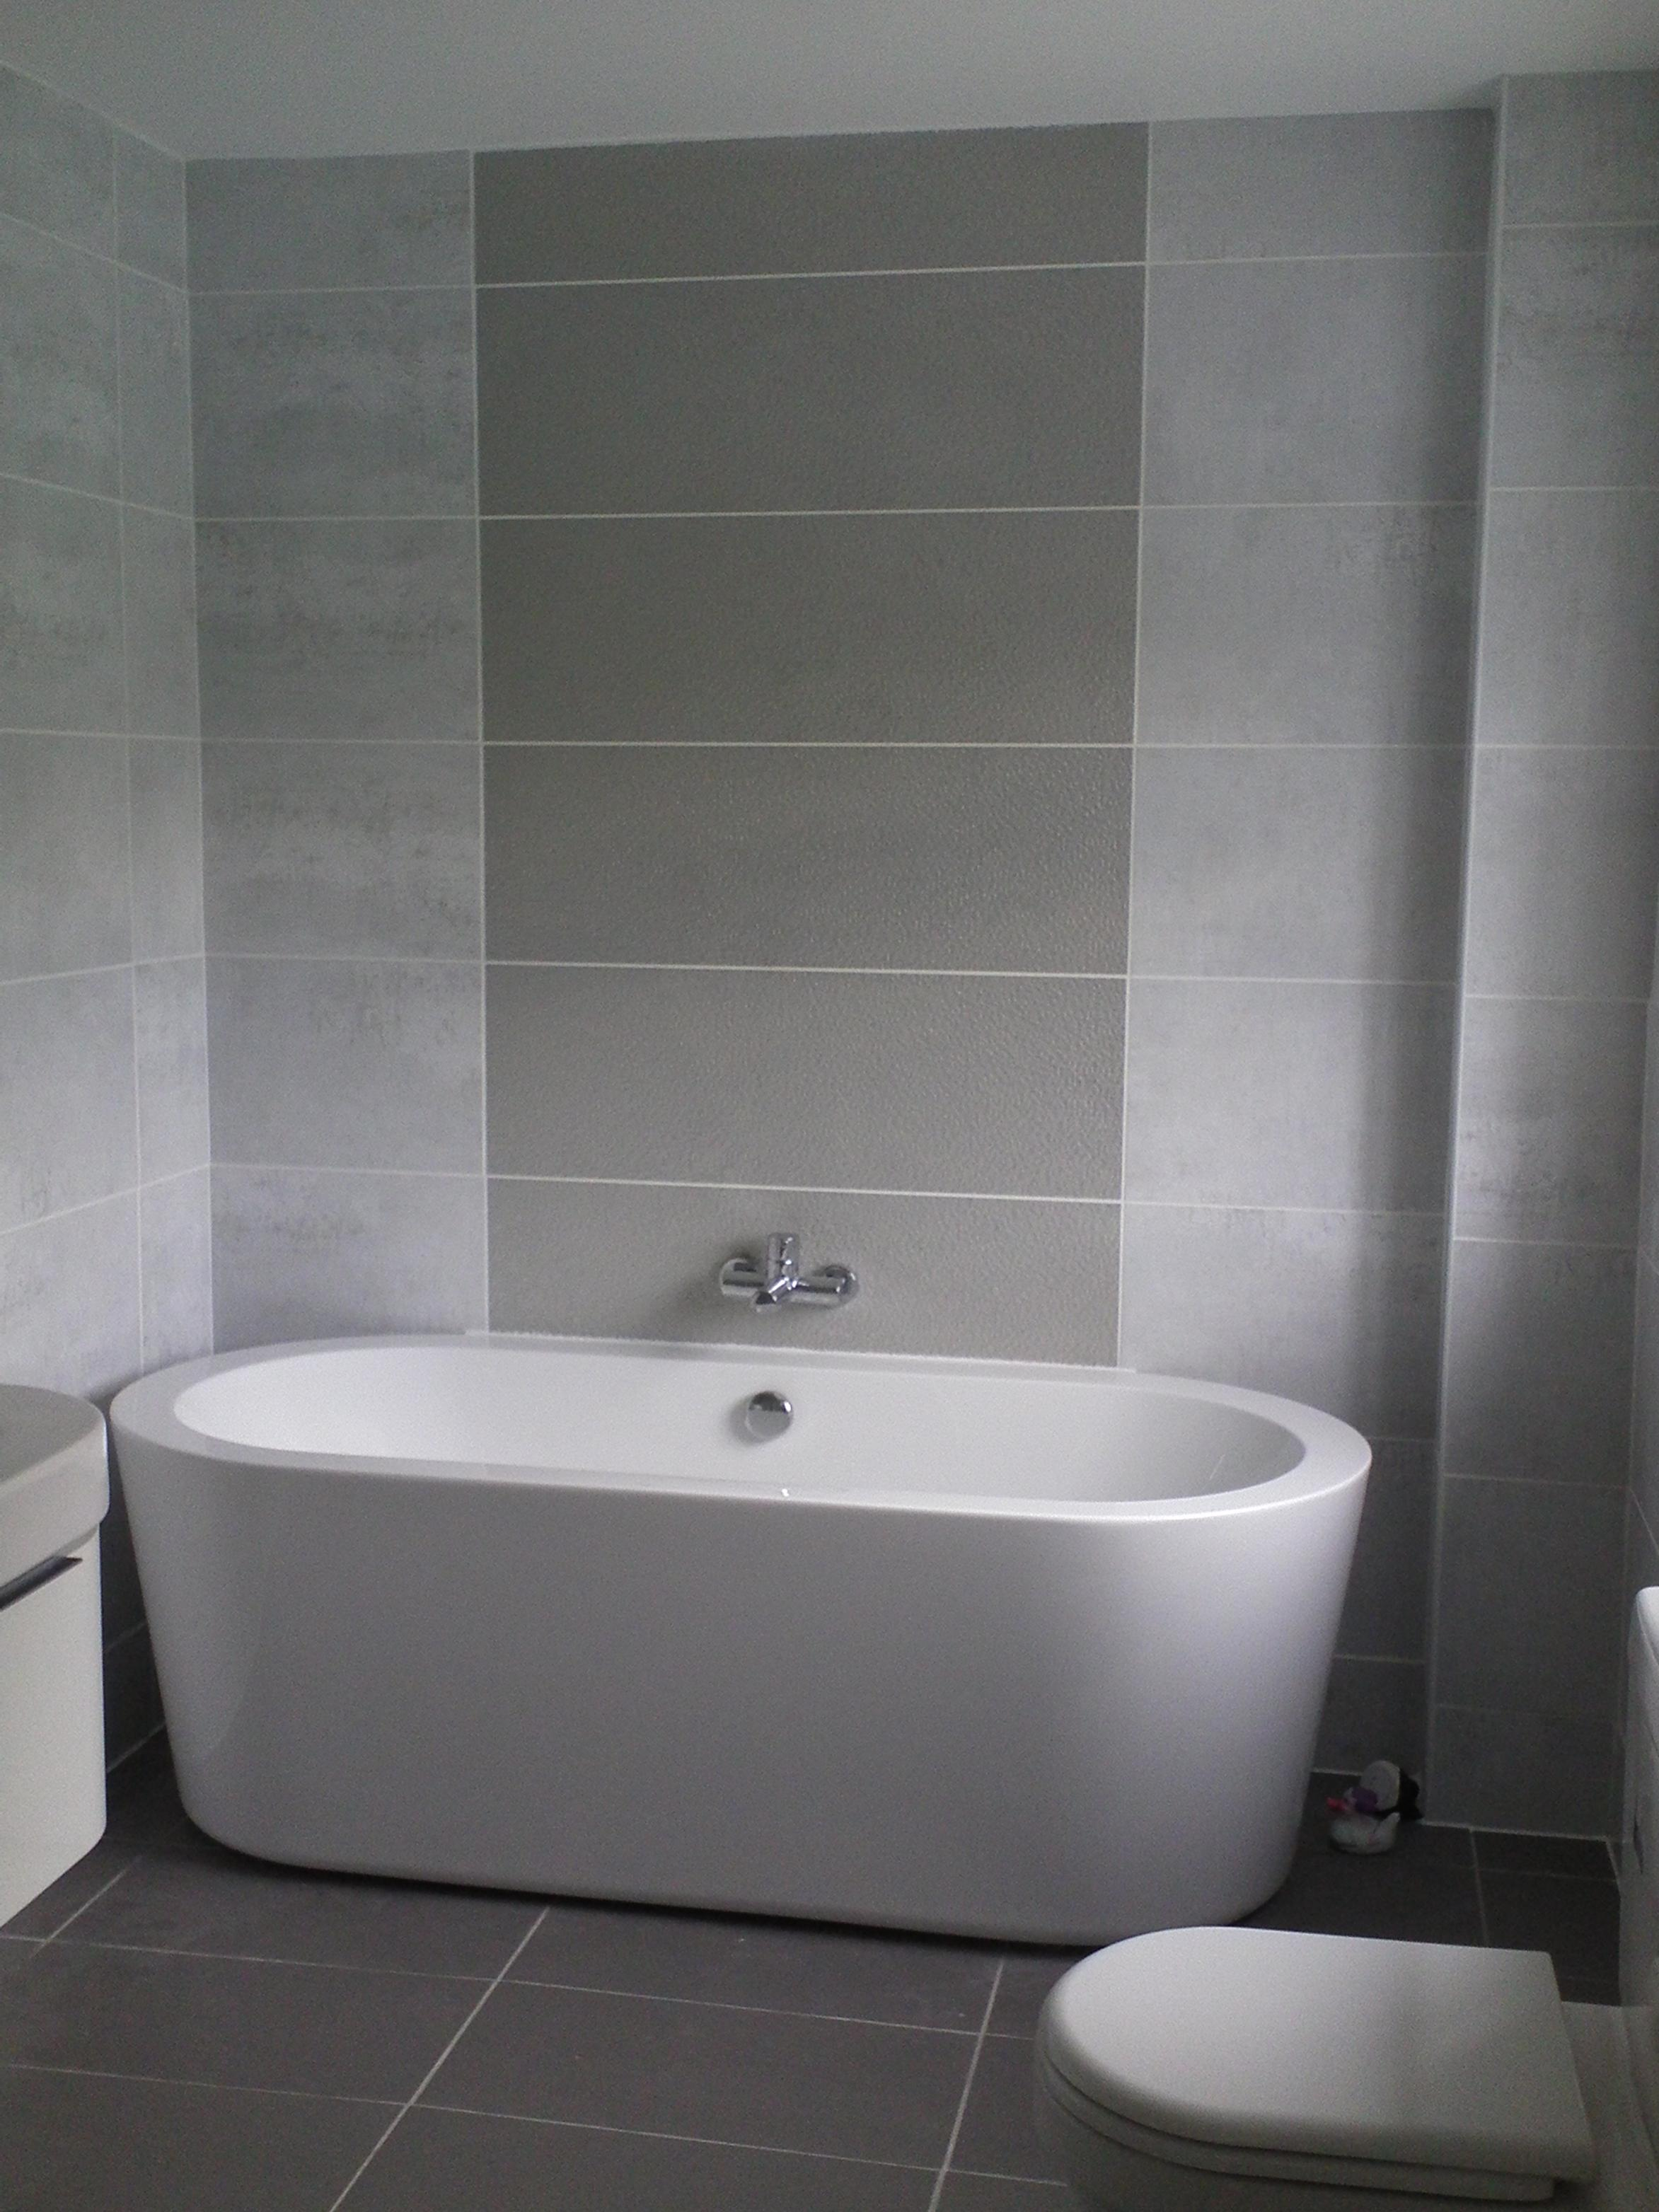 Black and white bathroom wall tiles -  Interior White Grey Tiles Bathroom Wall Added By